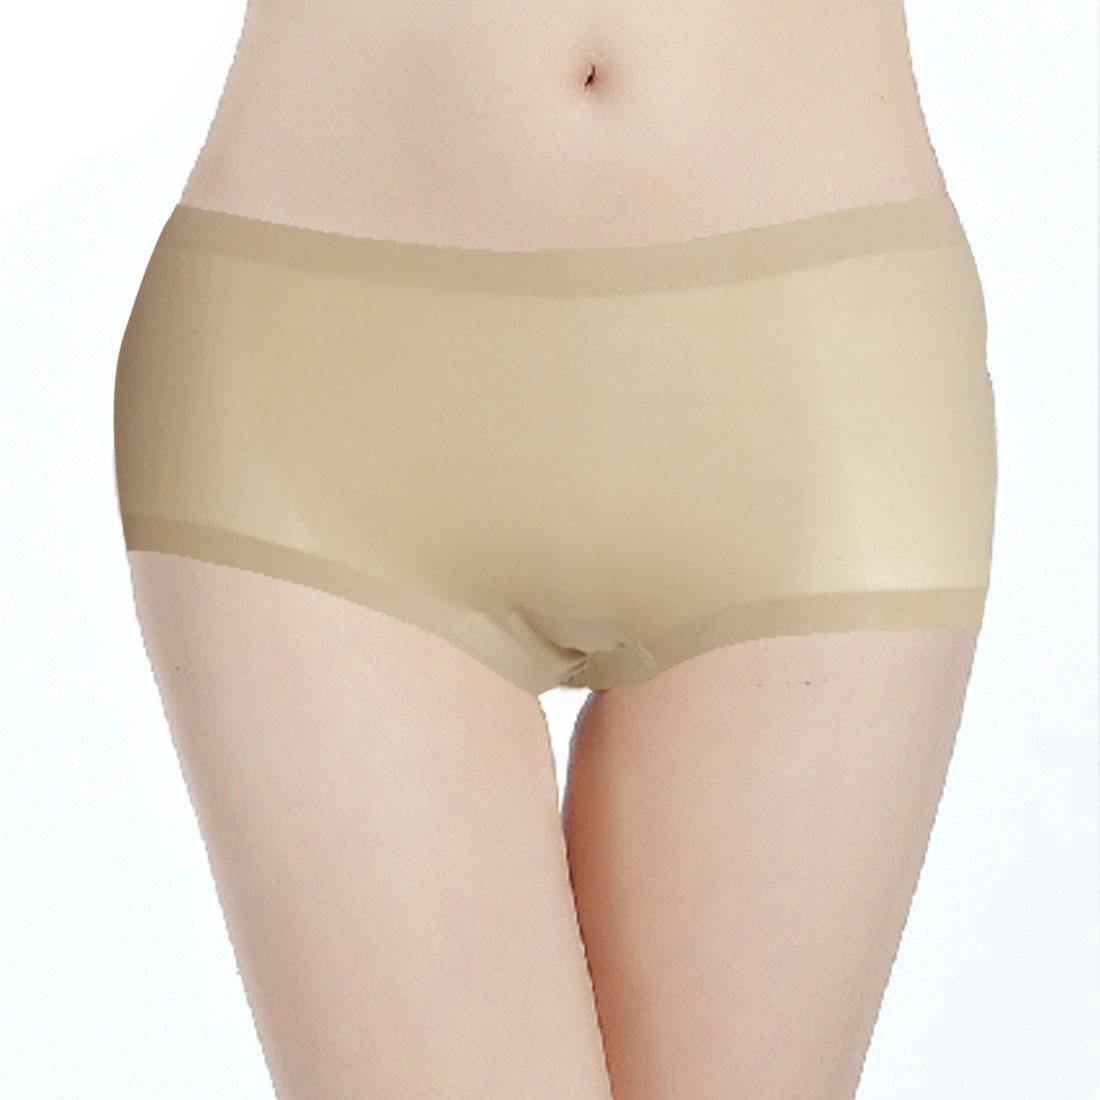 Beige Seamless Underwear Brief Ladies Size S Hipster Panty